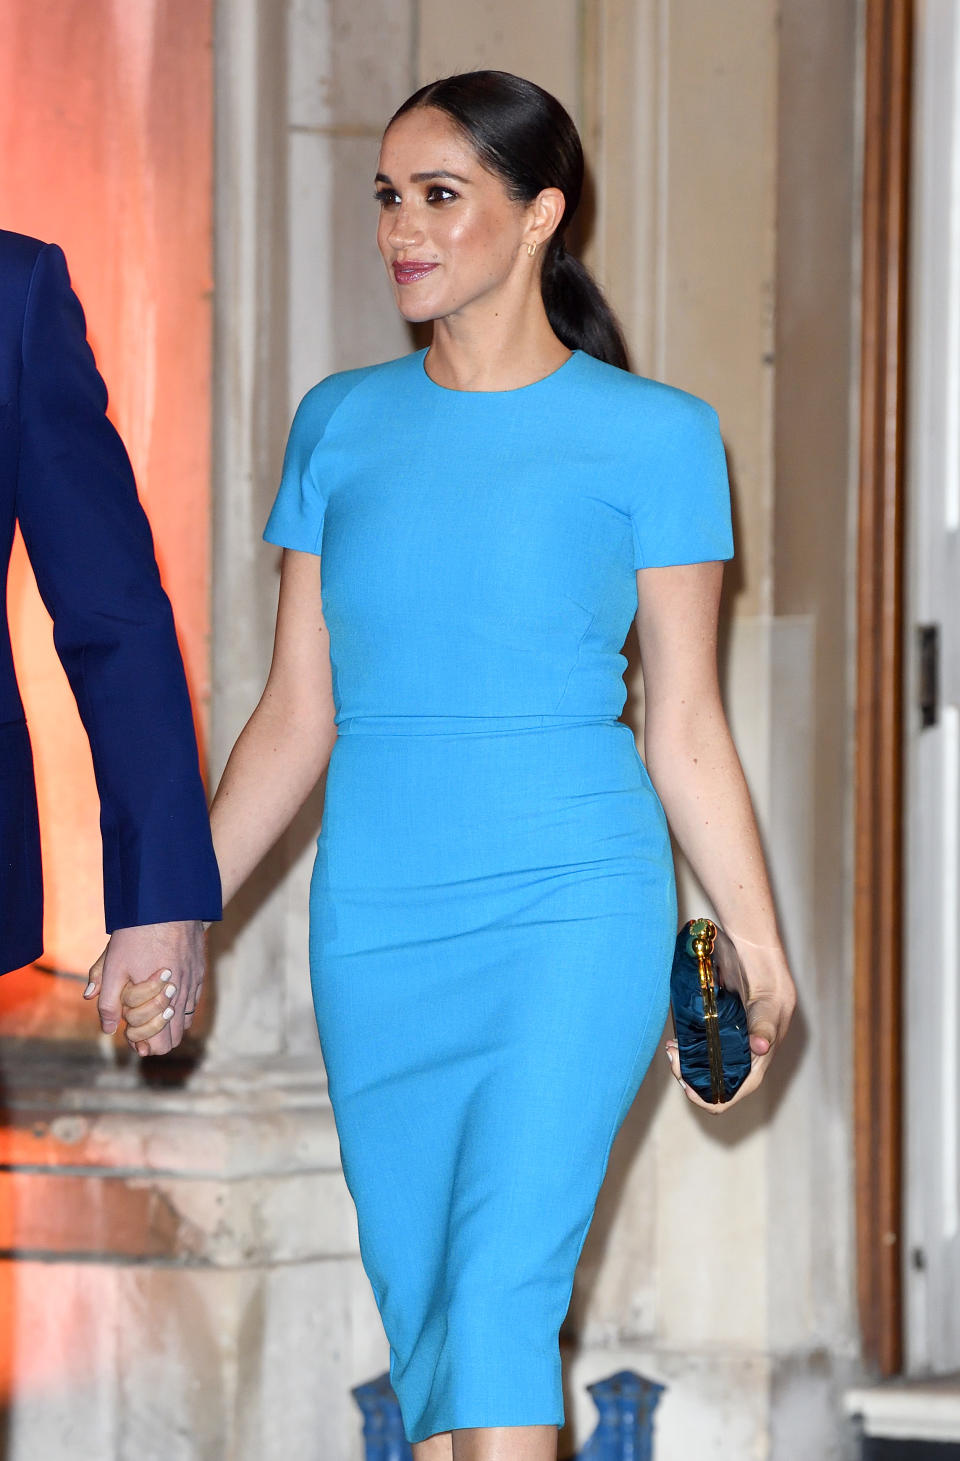 LONDON, ENGLAND - MARCH 05: Meghan, Duchess of Sussex accompanied by Prince Harry, Duke of Sussex attends The Endeavour Fund Awards at Mansion House on March 05, 2020 in London, England. (Photo by Karwai Tang/WireImage)